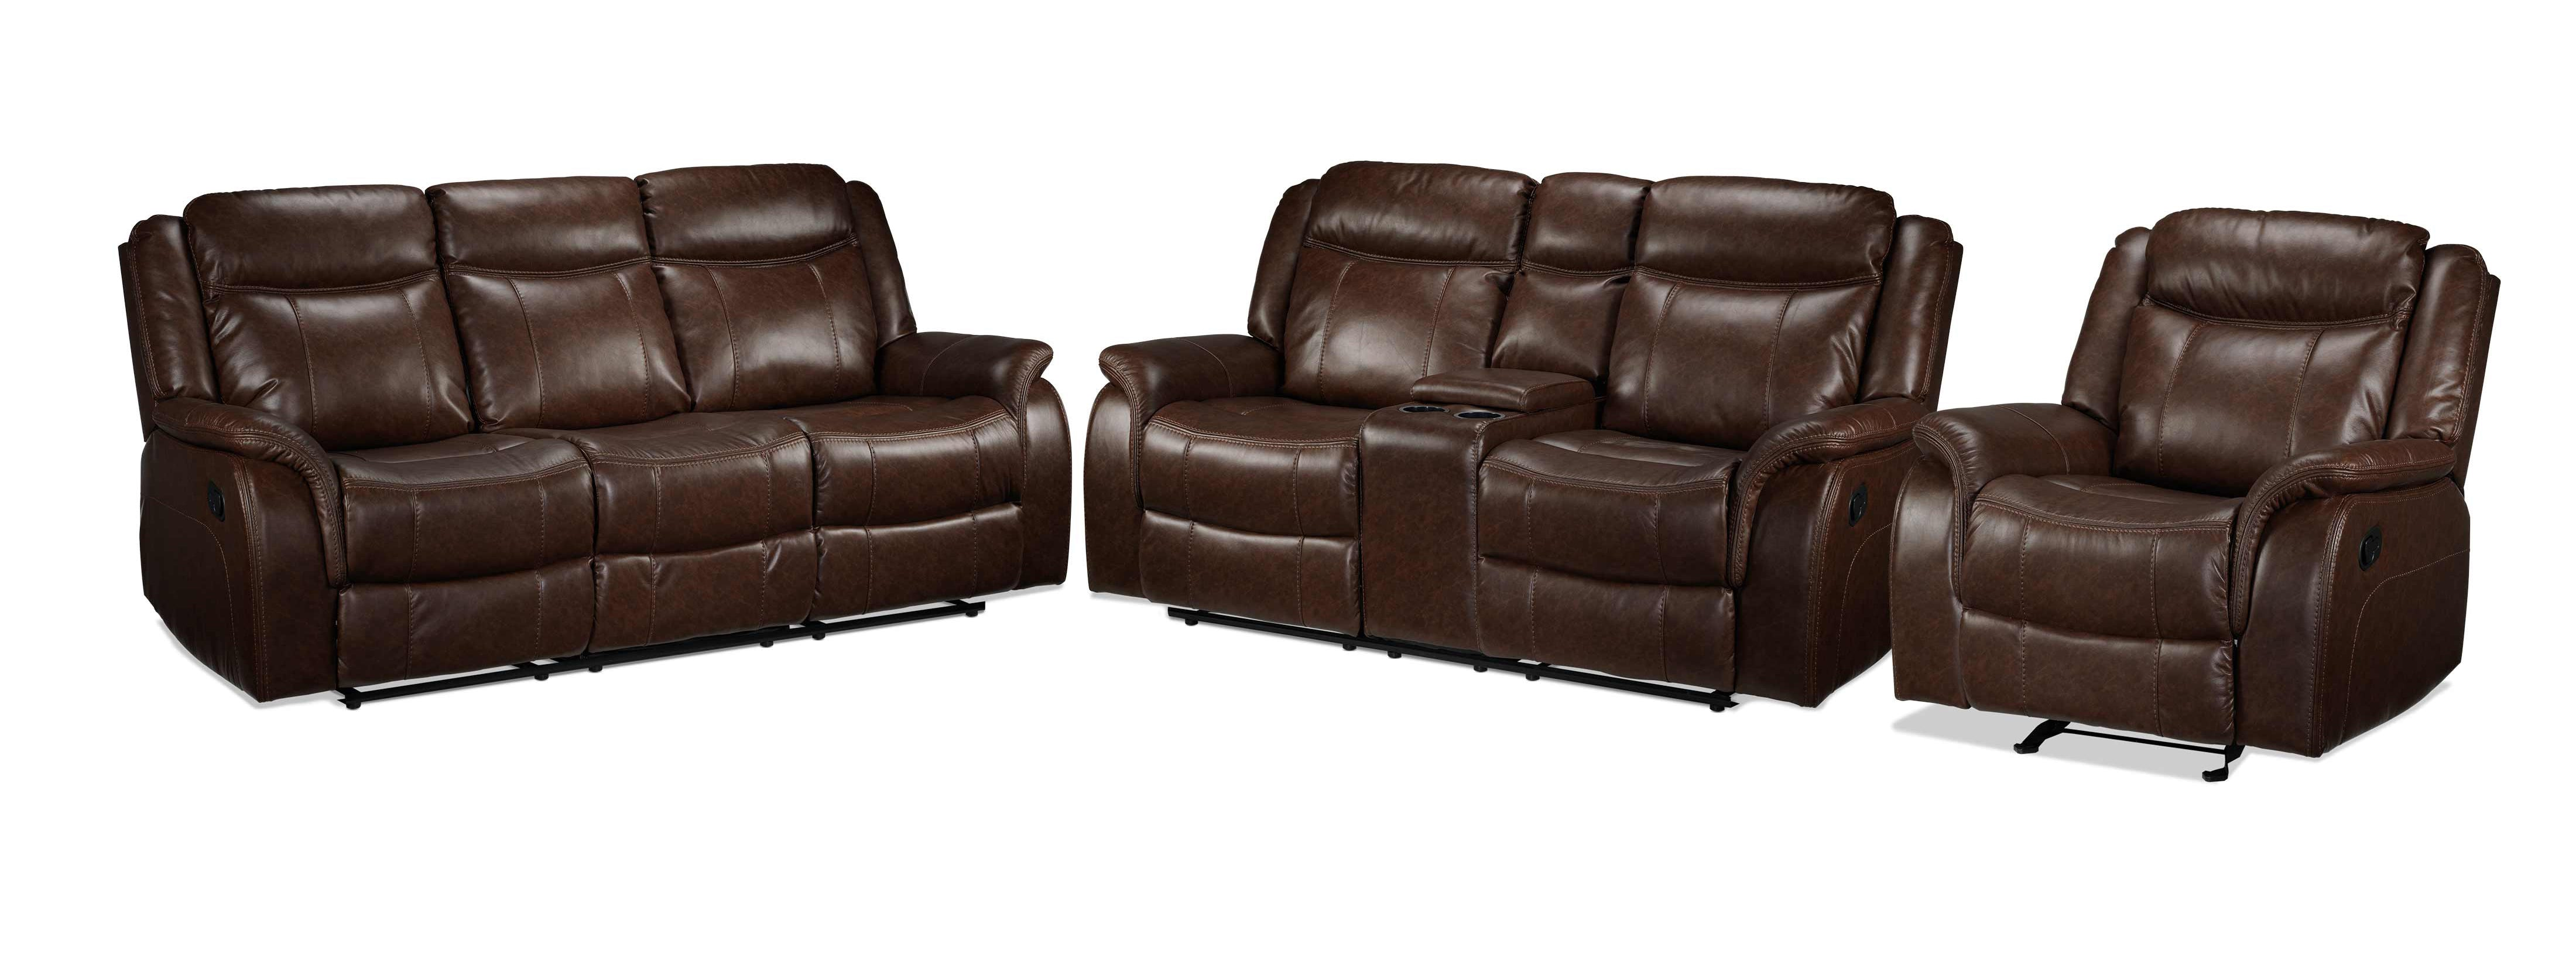 Scorpio Reclining Sofa Reclining Loveseat And Glider Recliner